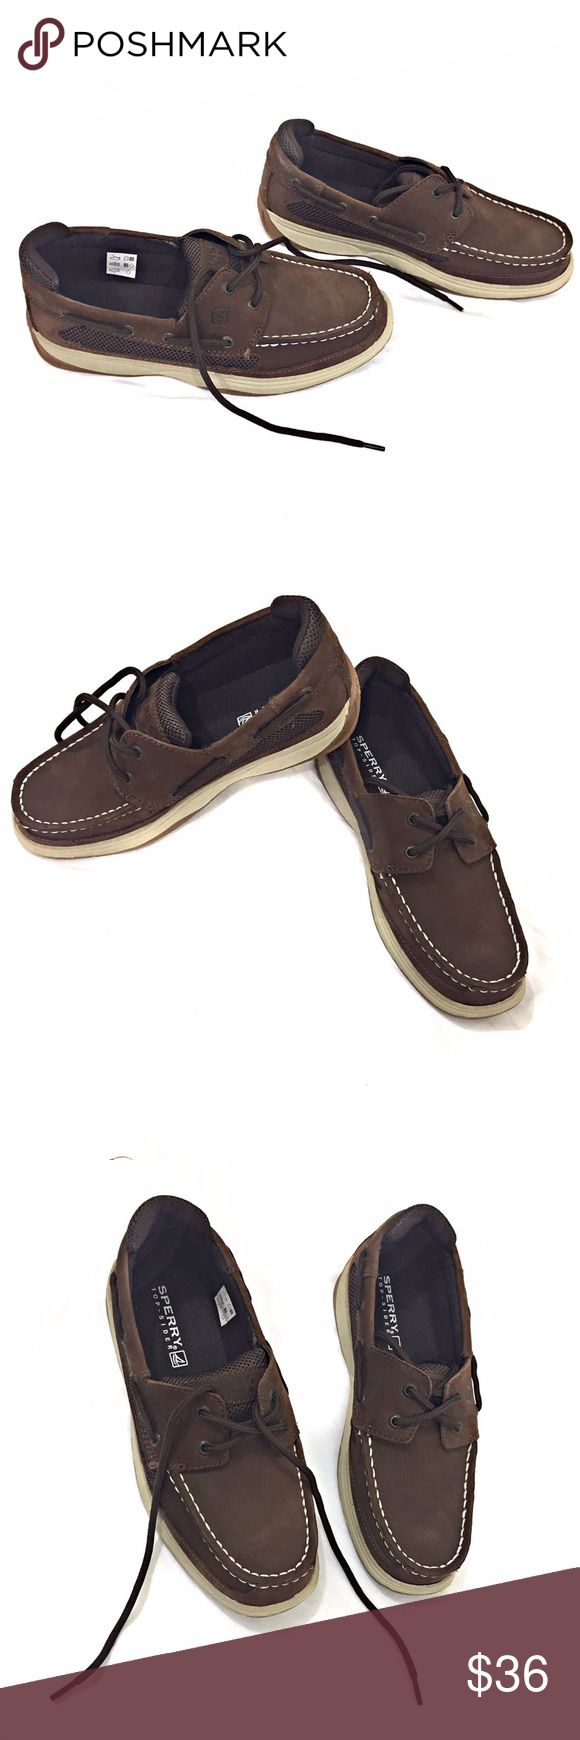 Sperry Top-Sider Boy's Lanyard Shoes SZ 4.5 Brown The Sperry Top-Sider® Kids Lanyard will never leave them stranded in a sea of style! Durable leather upper. 360° Lacing System™ with grommet and lacing details for an iconic boat shoe look. Vented, mesh side panels for breathability. Textile lining for all-day comfort. Non-marking, molded outsole provides traction. Imported. New without box Size 4.5 Sperry Shoes